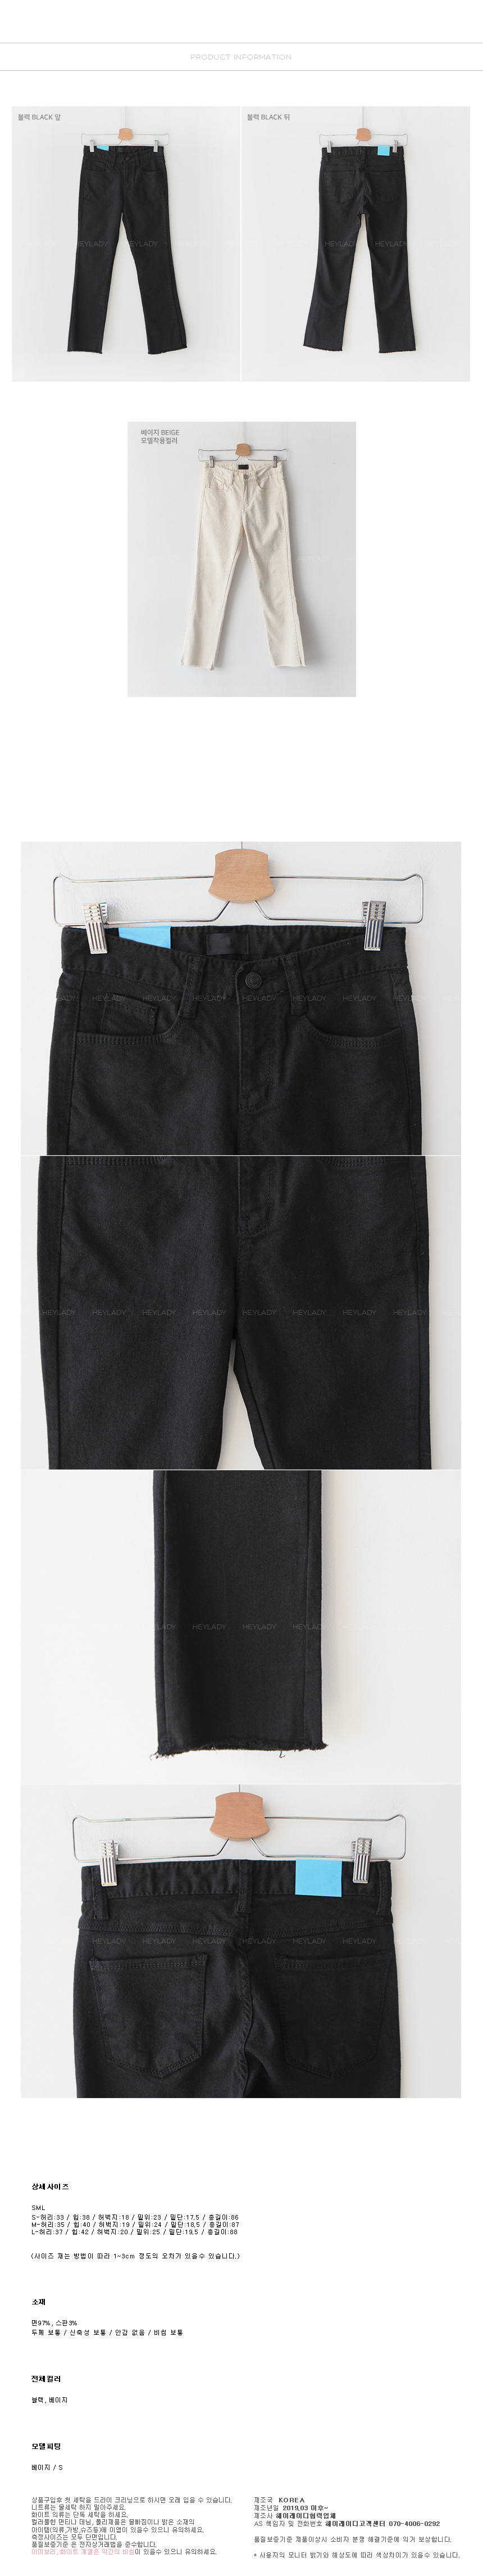 Hockney Flared cotton pants